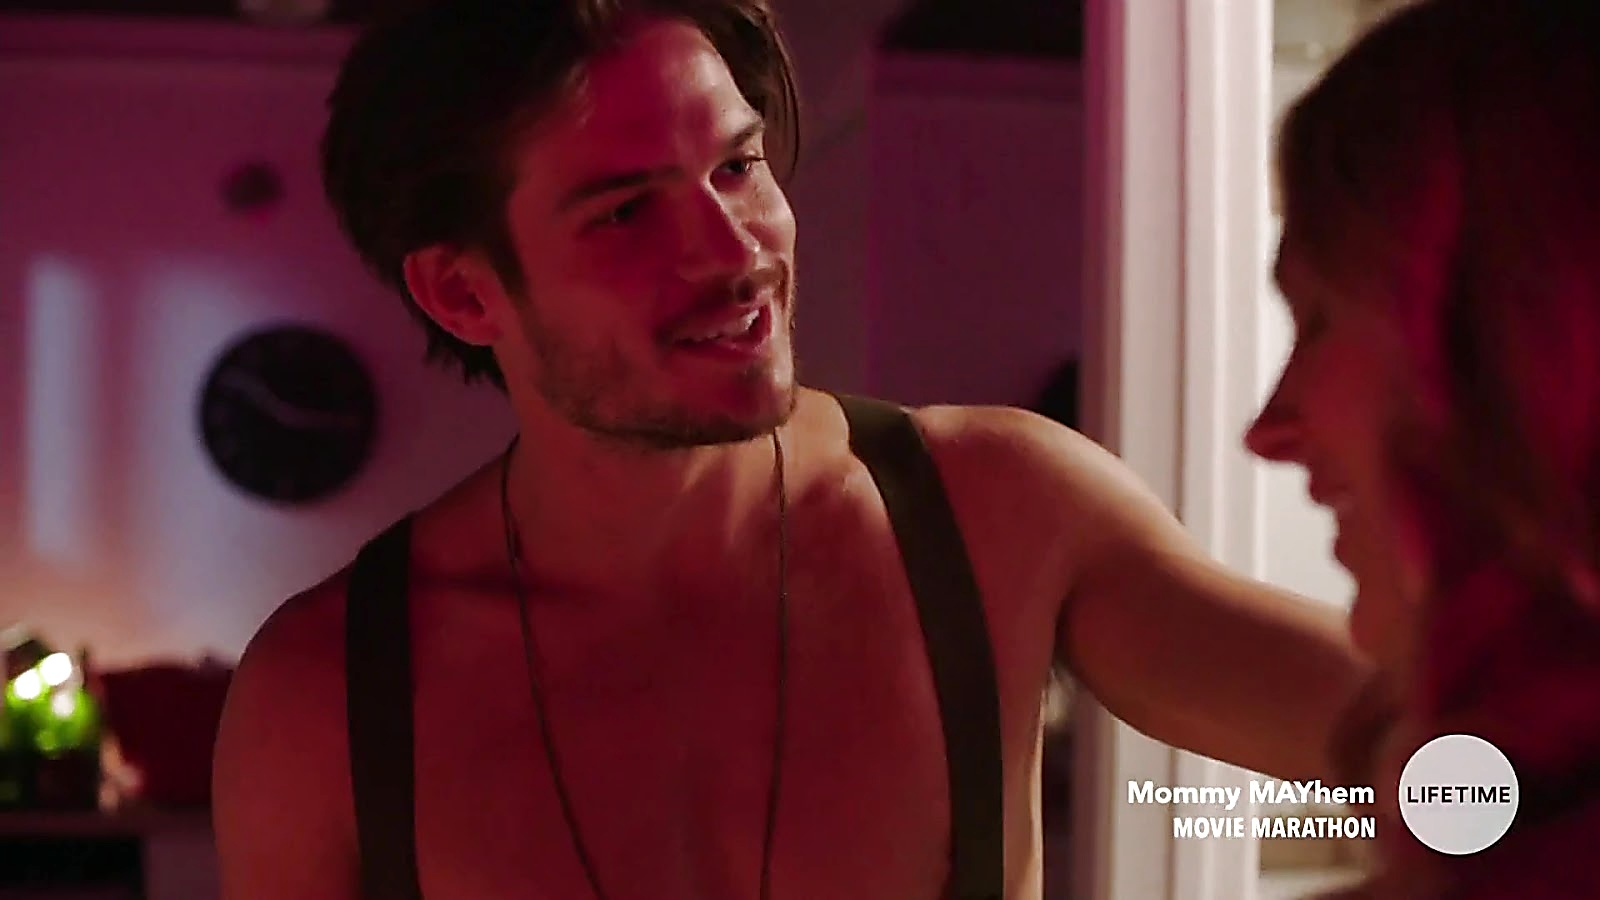 Tyler Johnson sexy shirtless scene May 27, 2019, 1pm